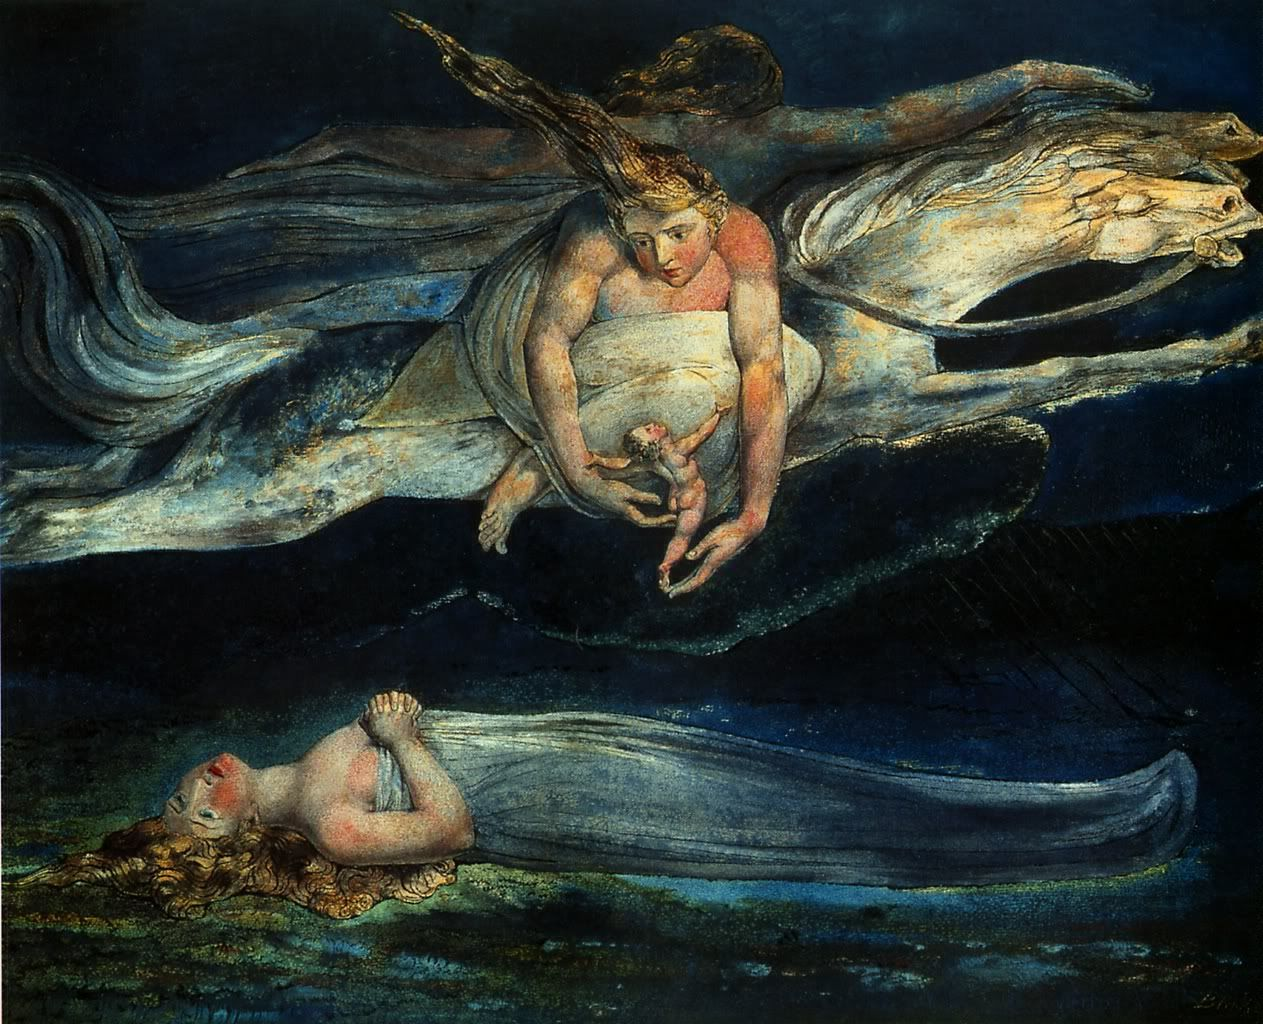 Stunning.  William Blake - Pity - 1795  I saw a series of this paintings in the Tate. The room was black so as not to compromise the paint. The paintings glowed!